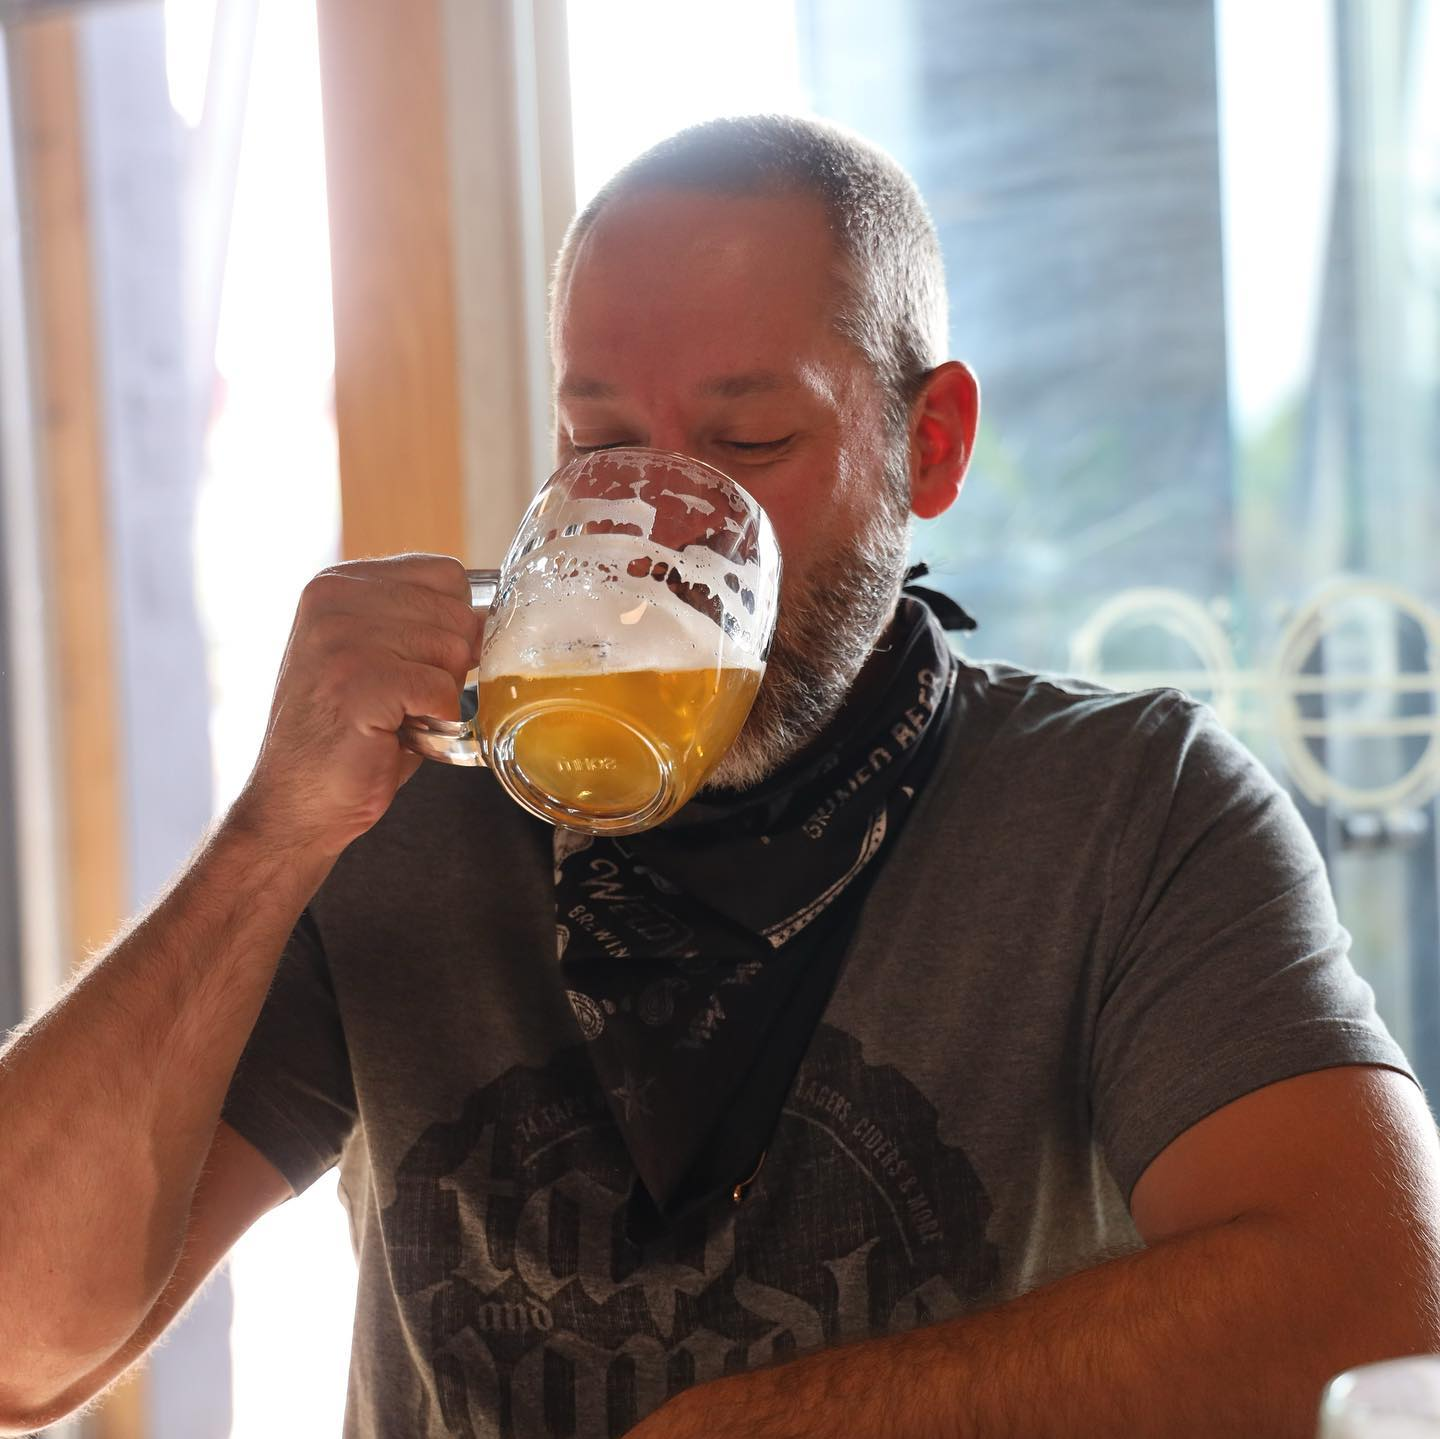 man drinking out of a beer mug